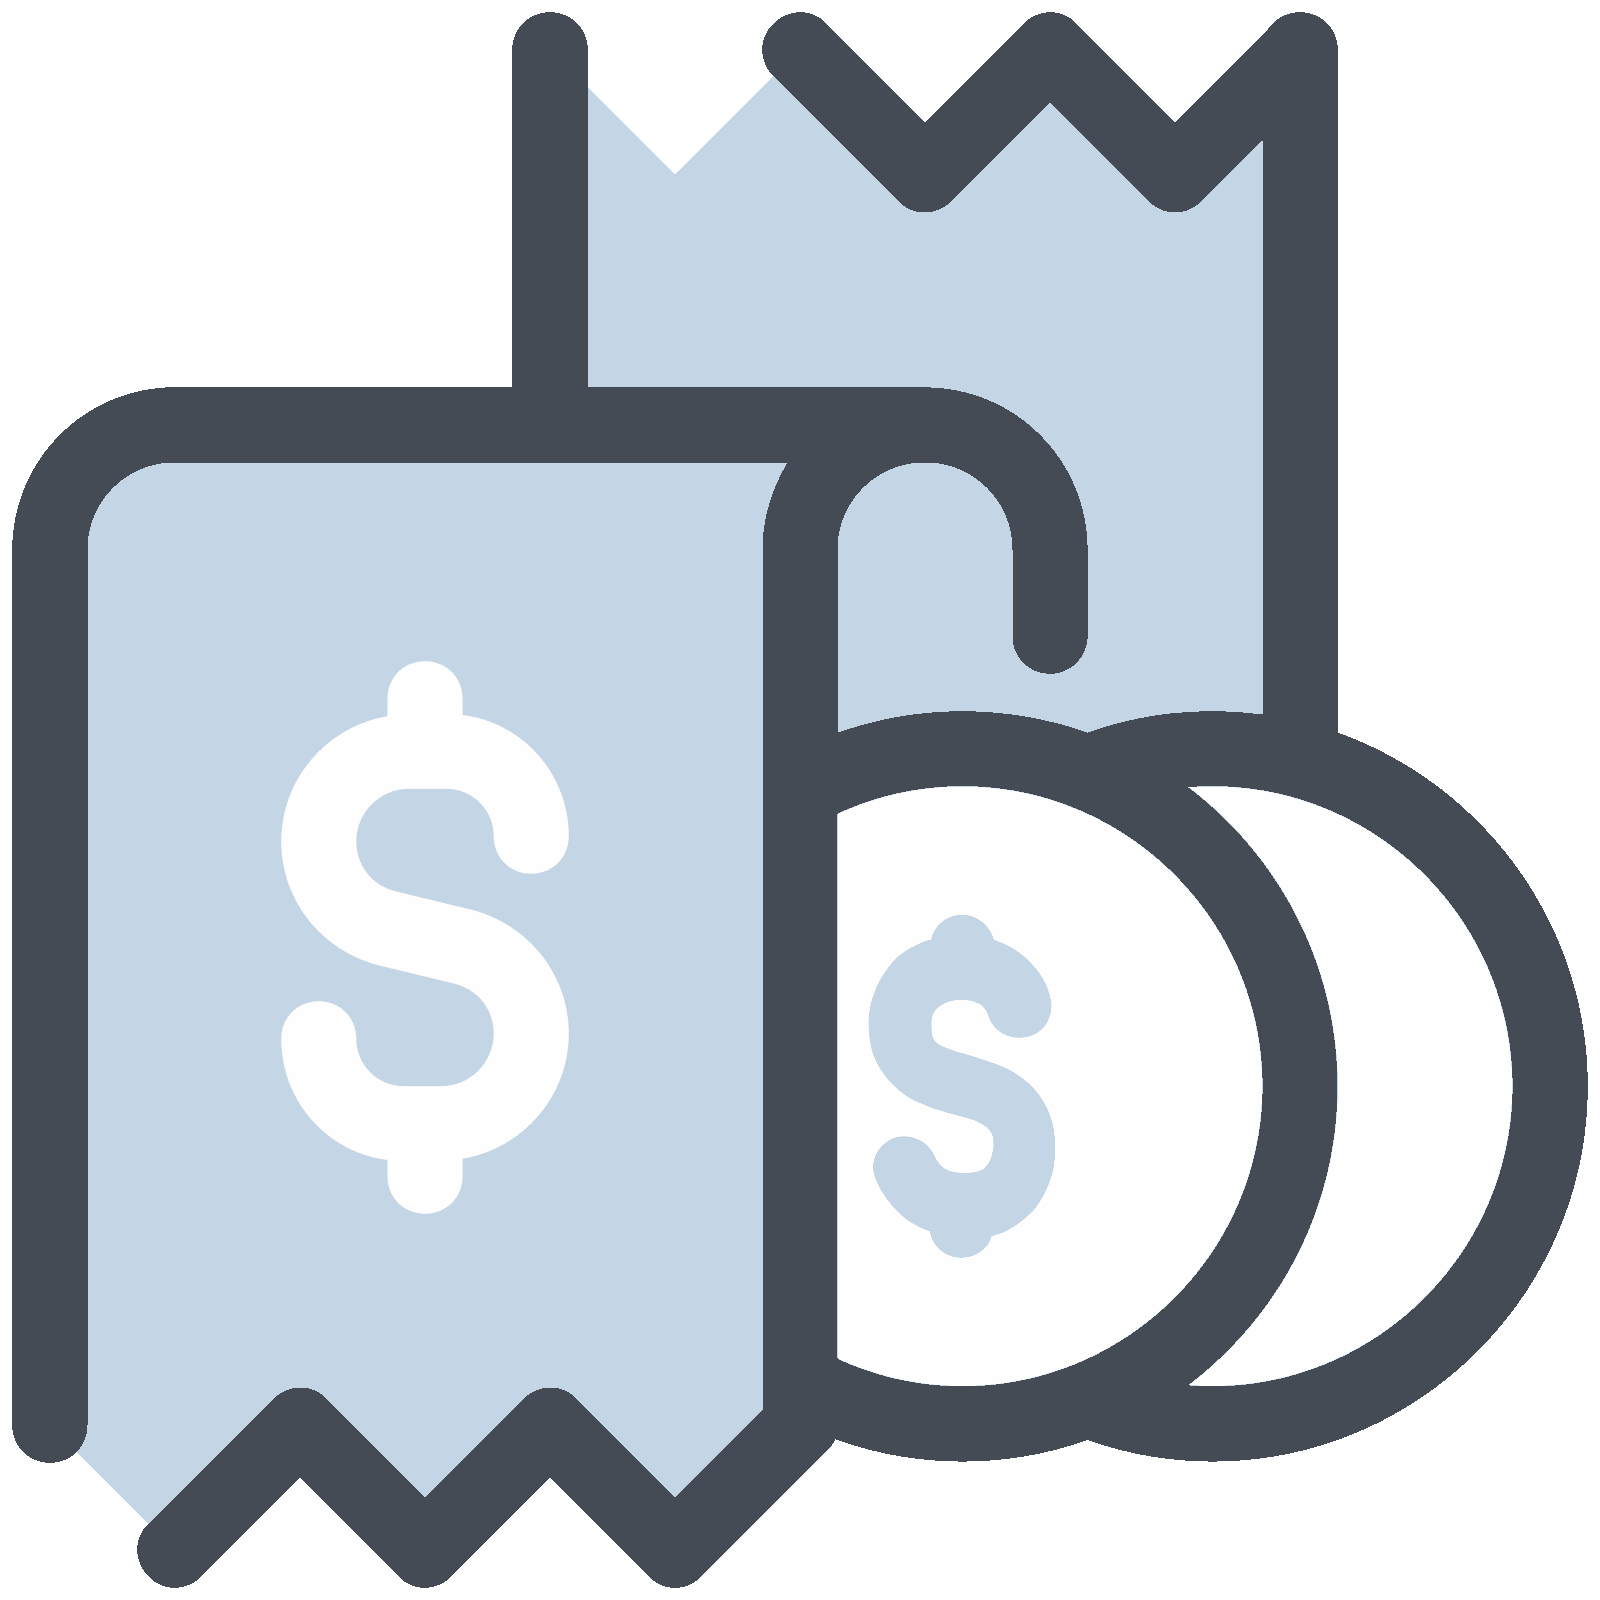 Buy for coins png. Finance clipart coin notes